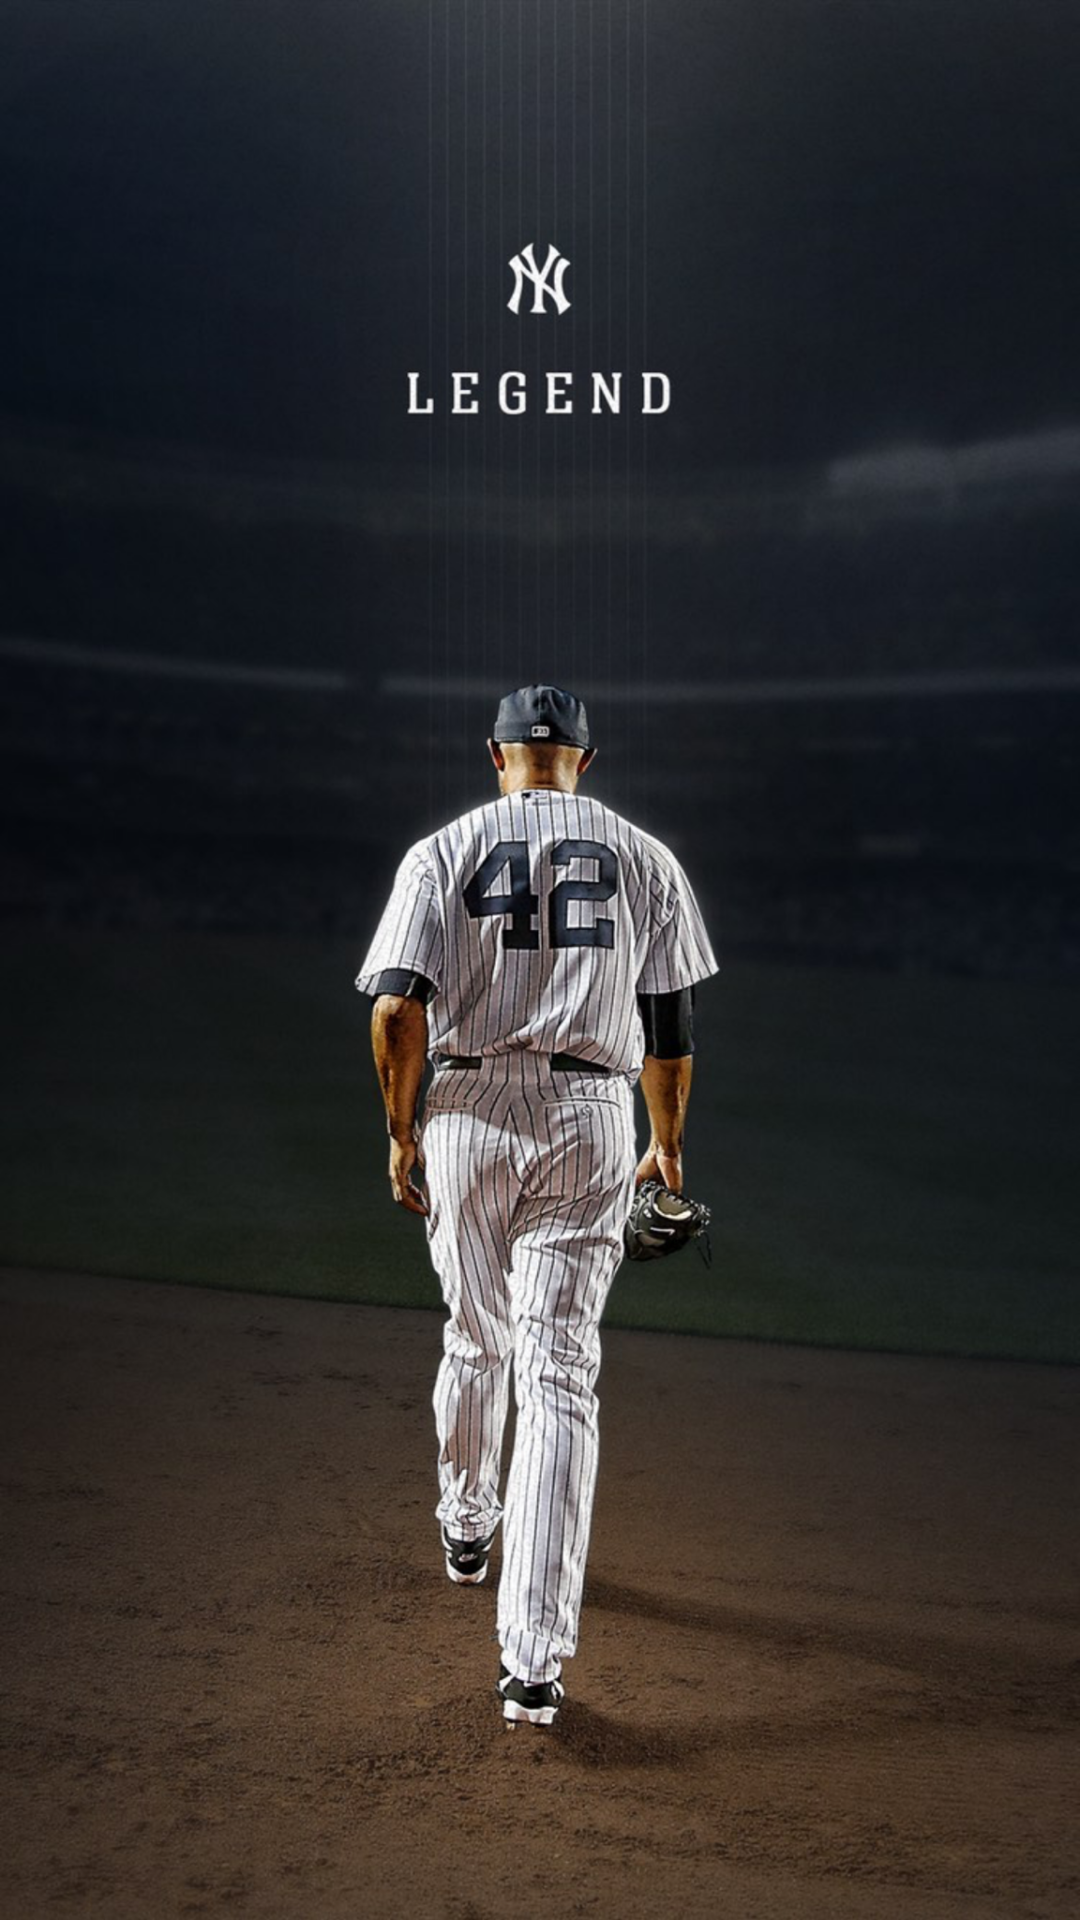 Classic💋 — Enjoy a picture of Mariano Rivera today... he